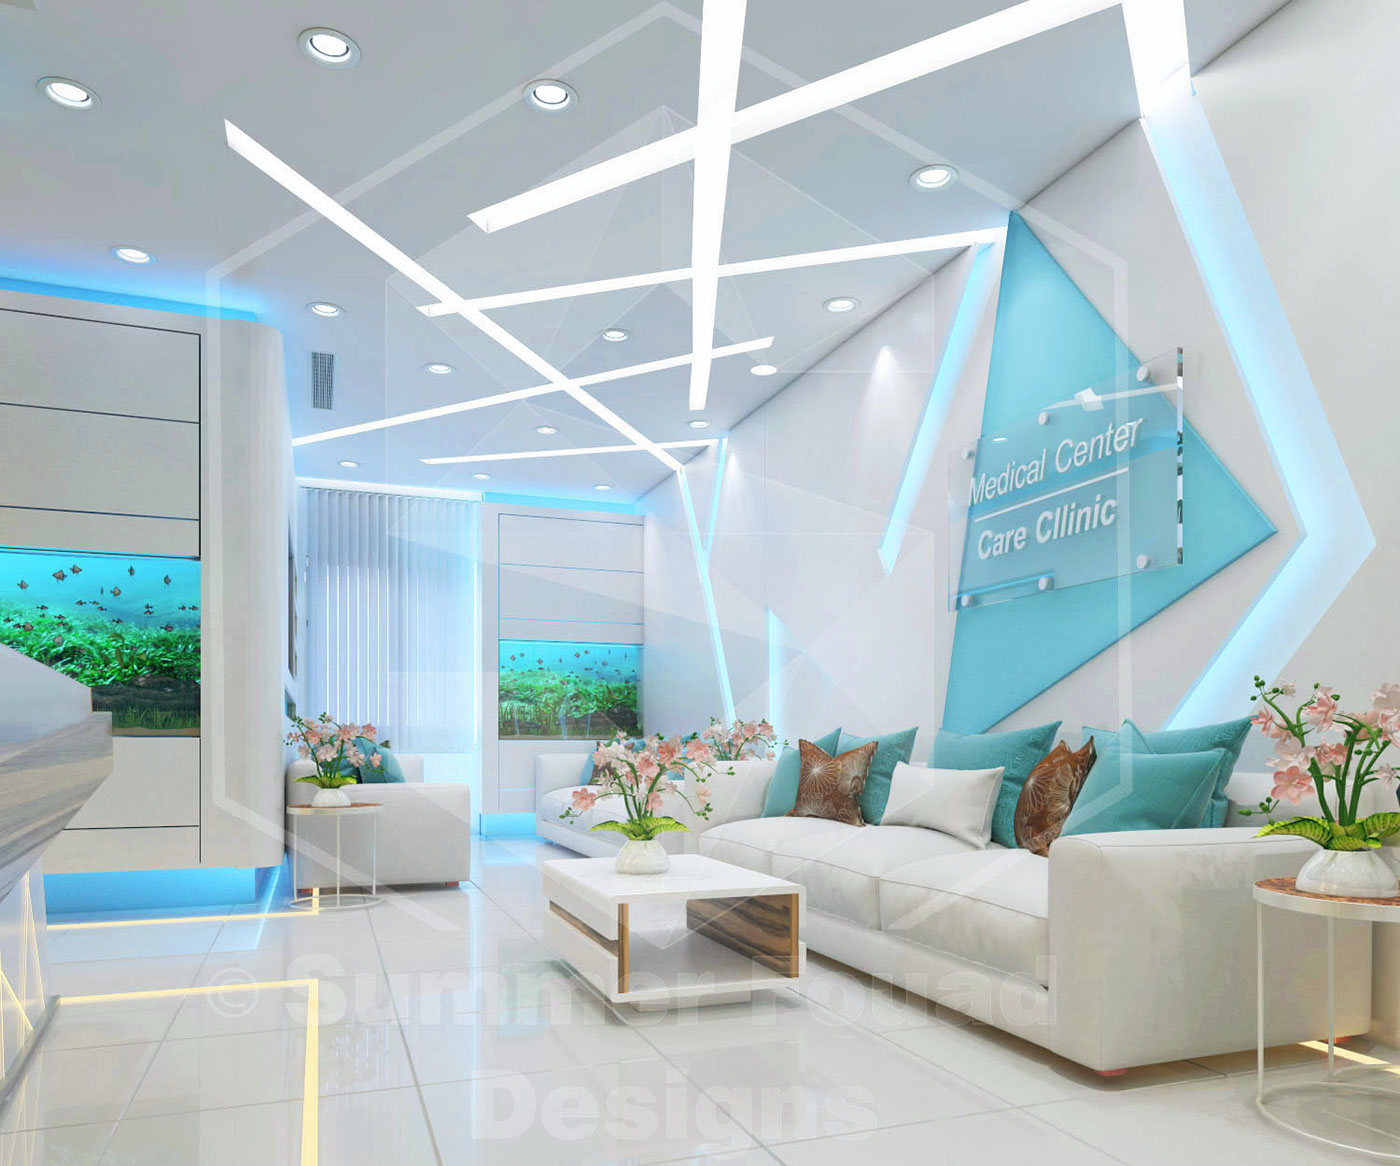 interior design clinic center modern minimalist home design rh ueleciuleg bdclab store